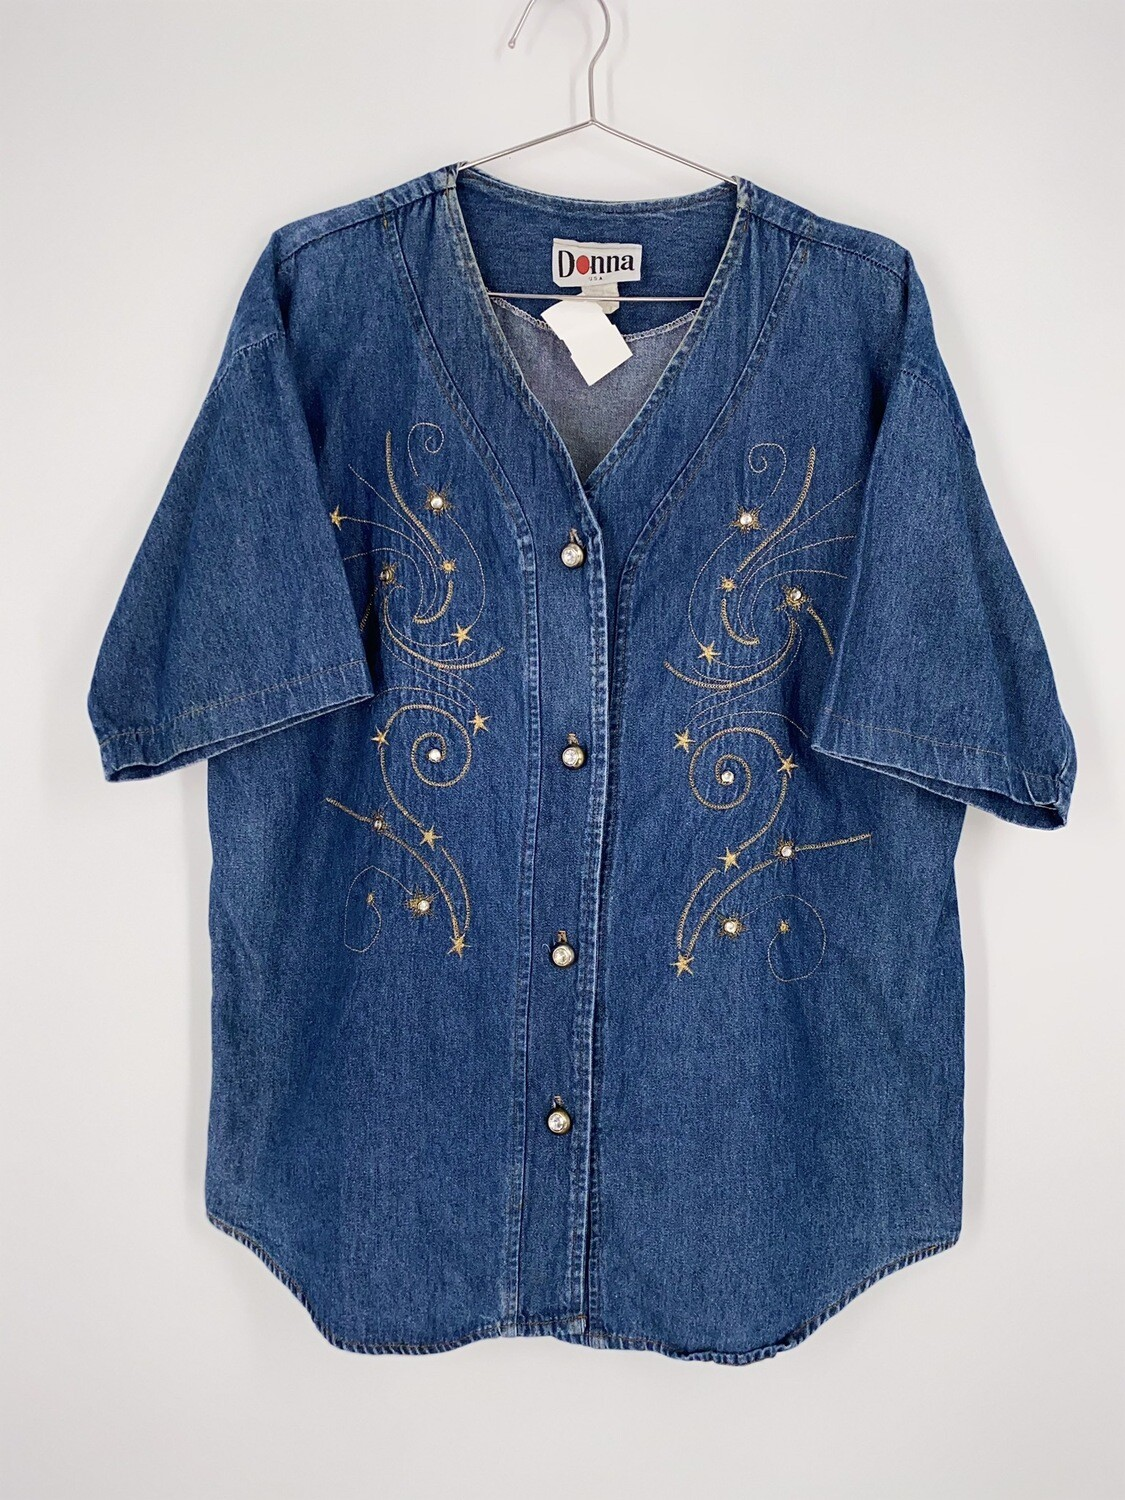 Star Embroidered Denim Top Size M